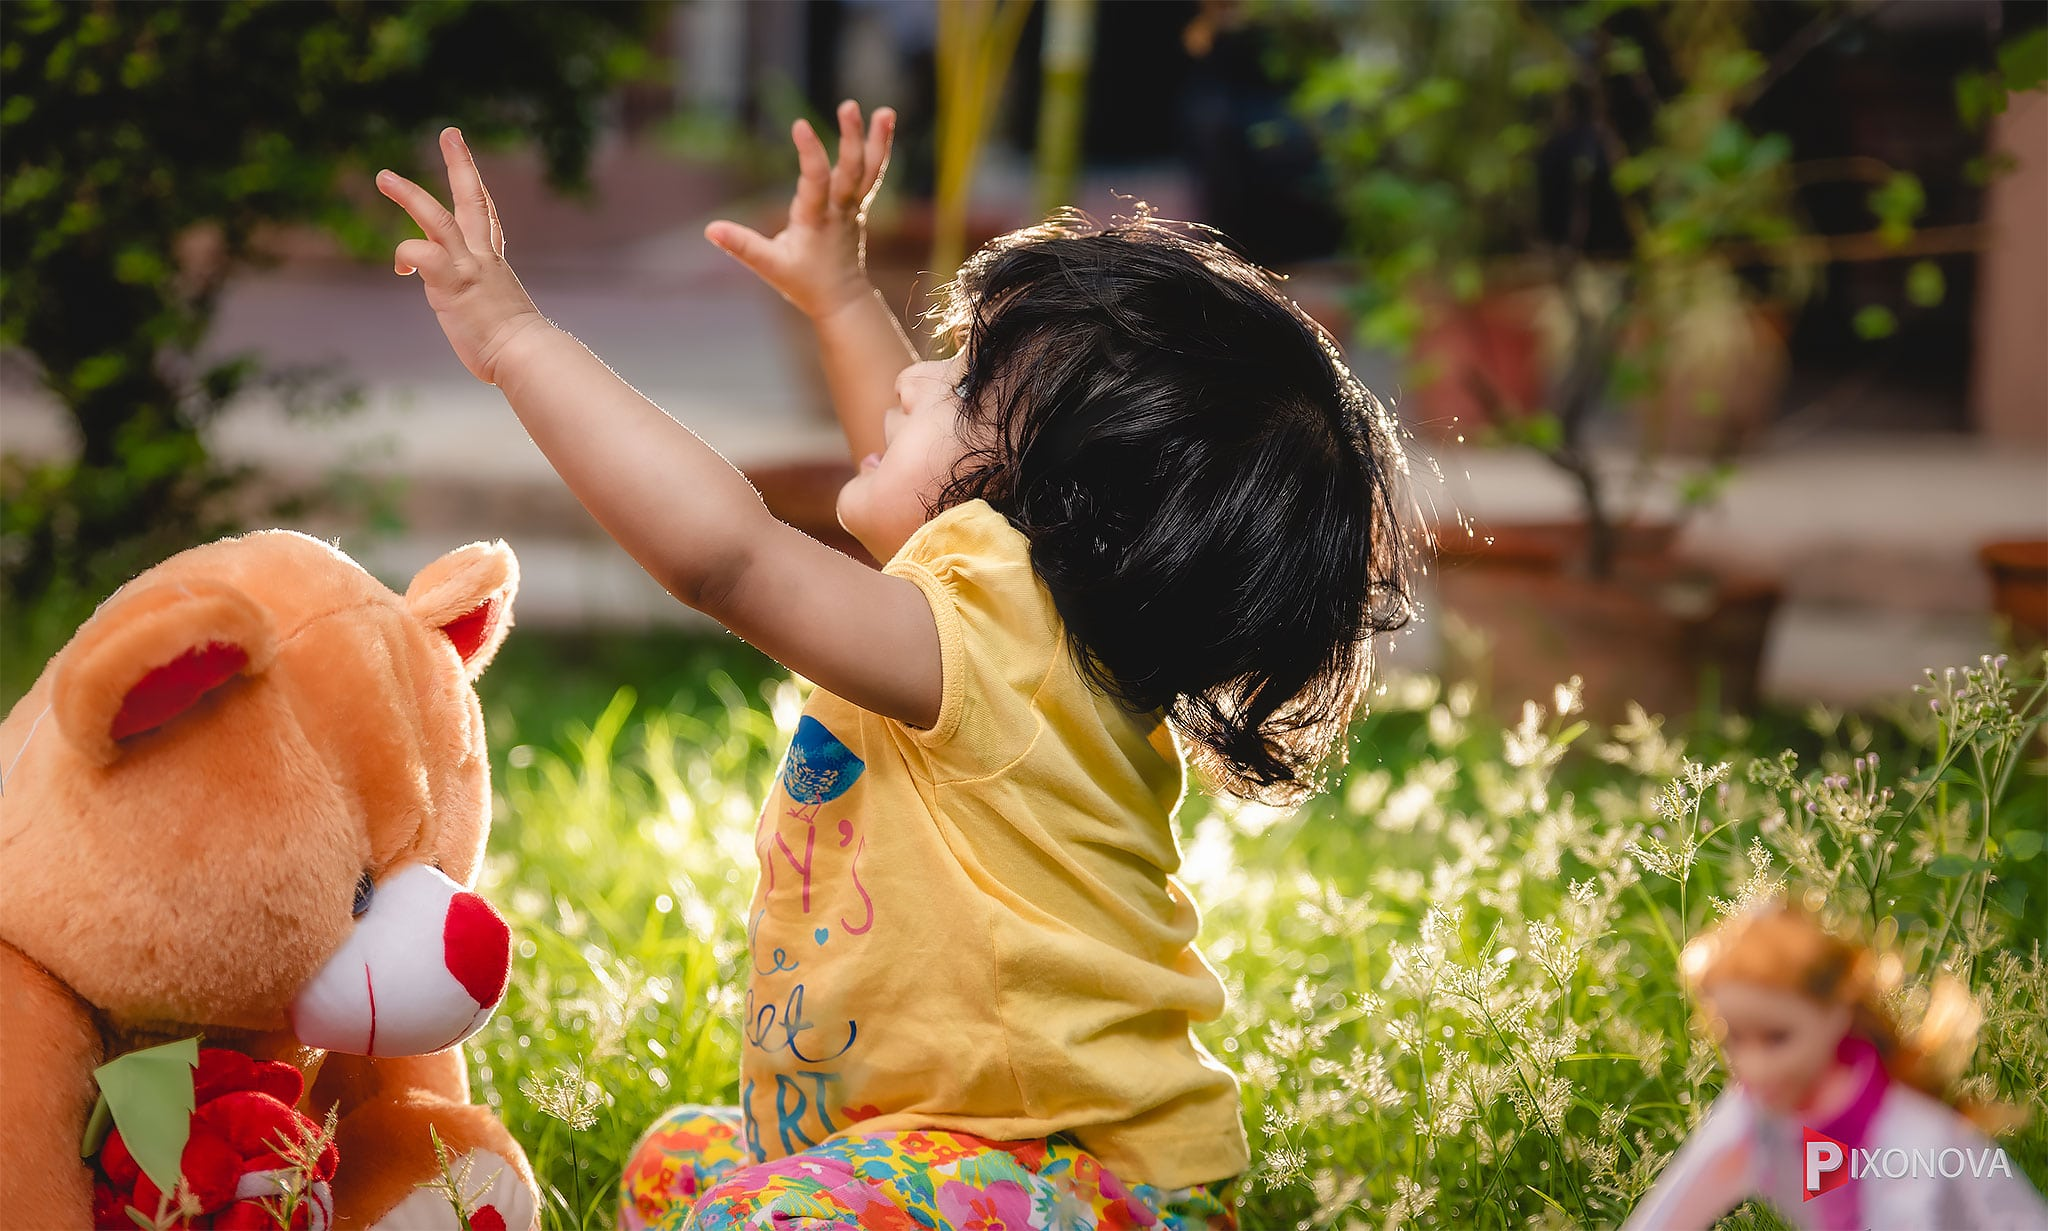 Playing child during kids photography session